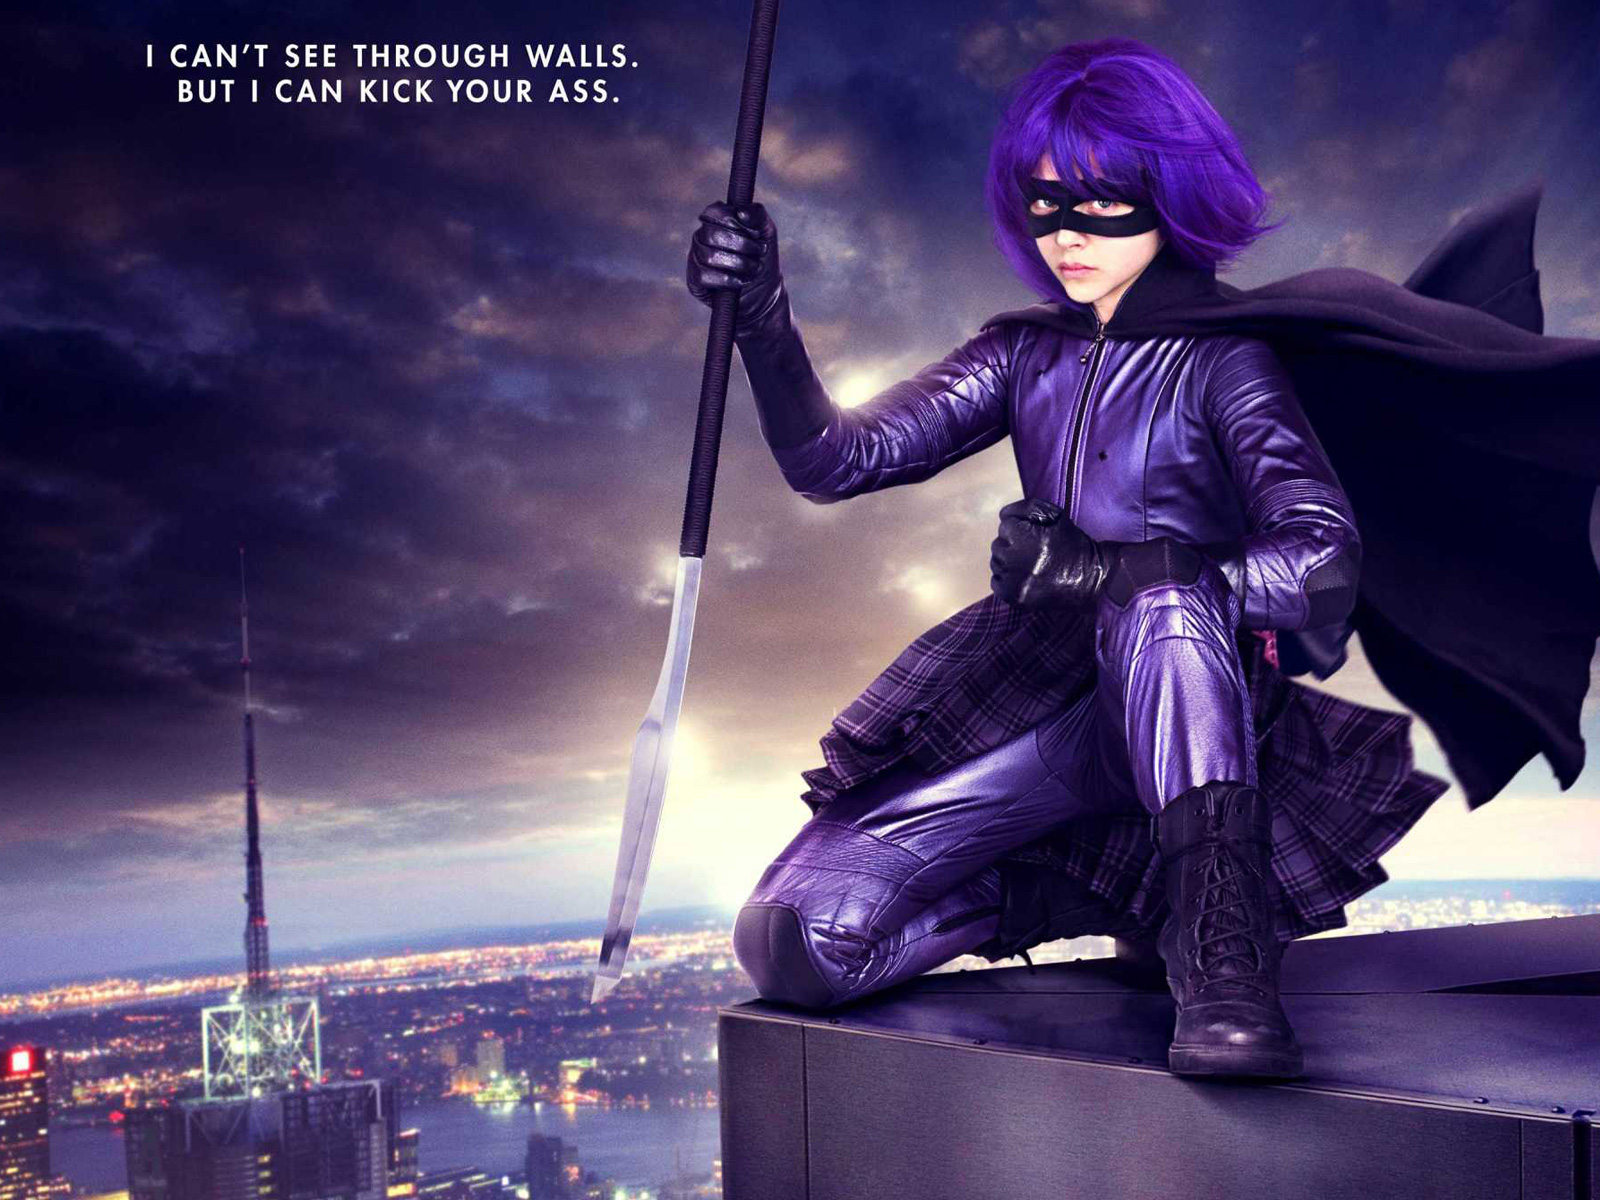 Hit Girl Kick Ass Movie 1830.66 Kb